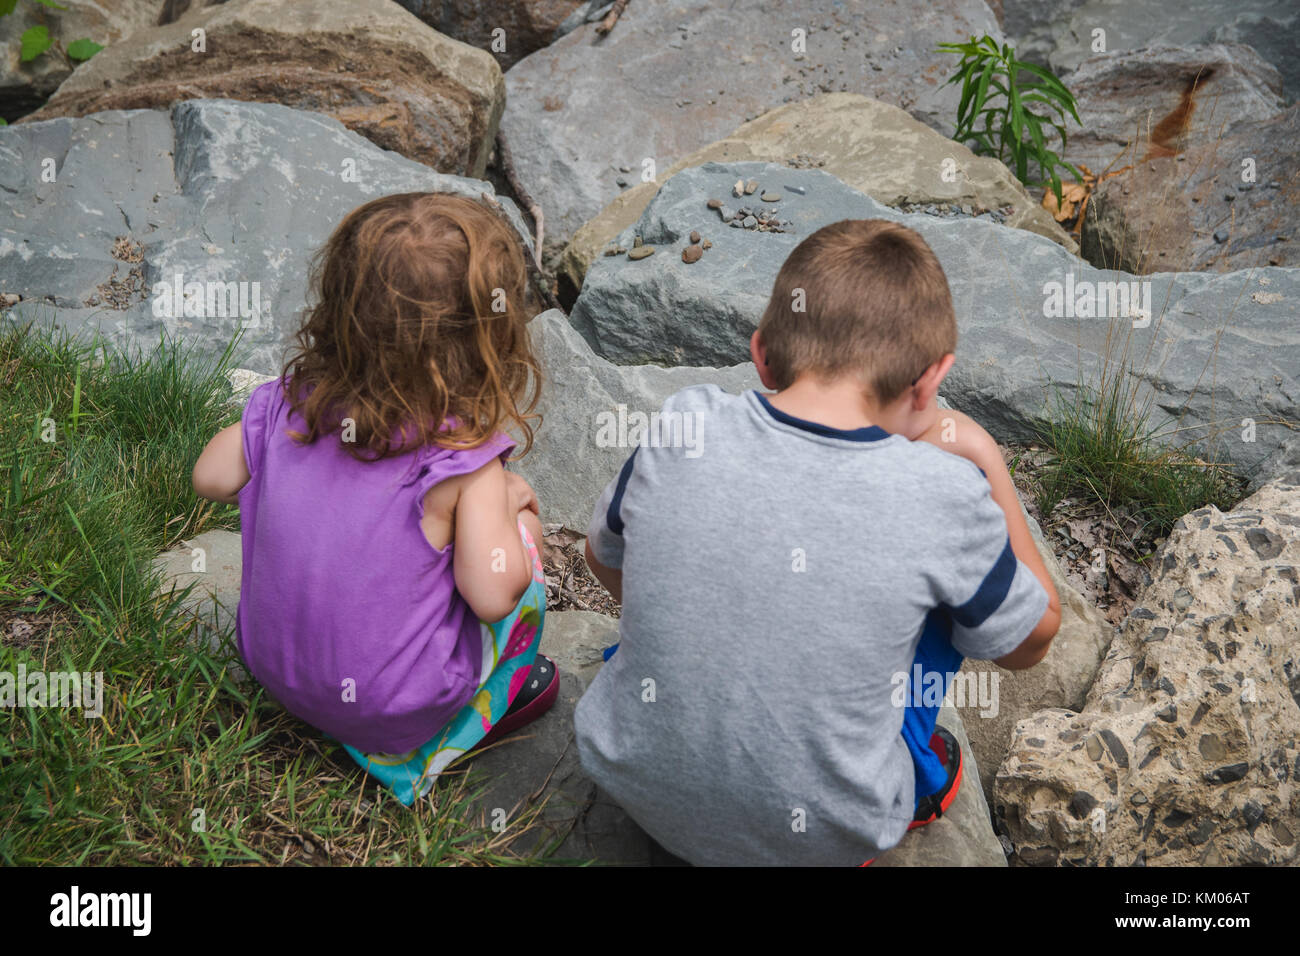 A brother and sister sitting next to each other with their backs to the viewer. - Stock Image